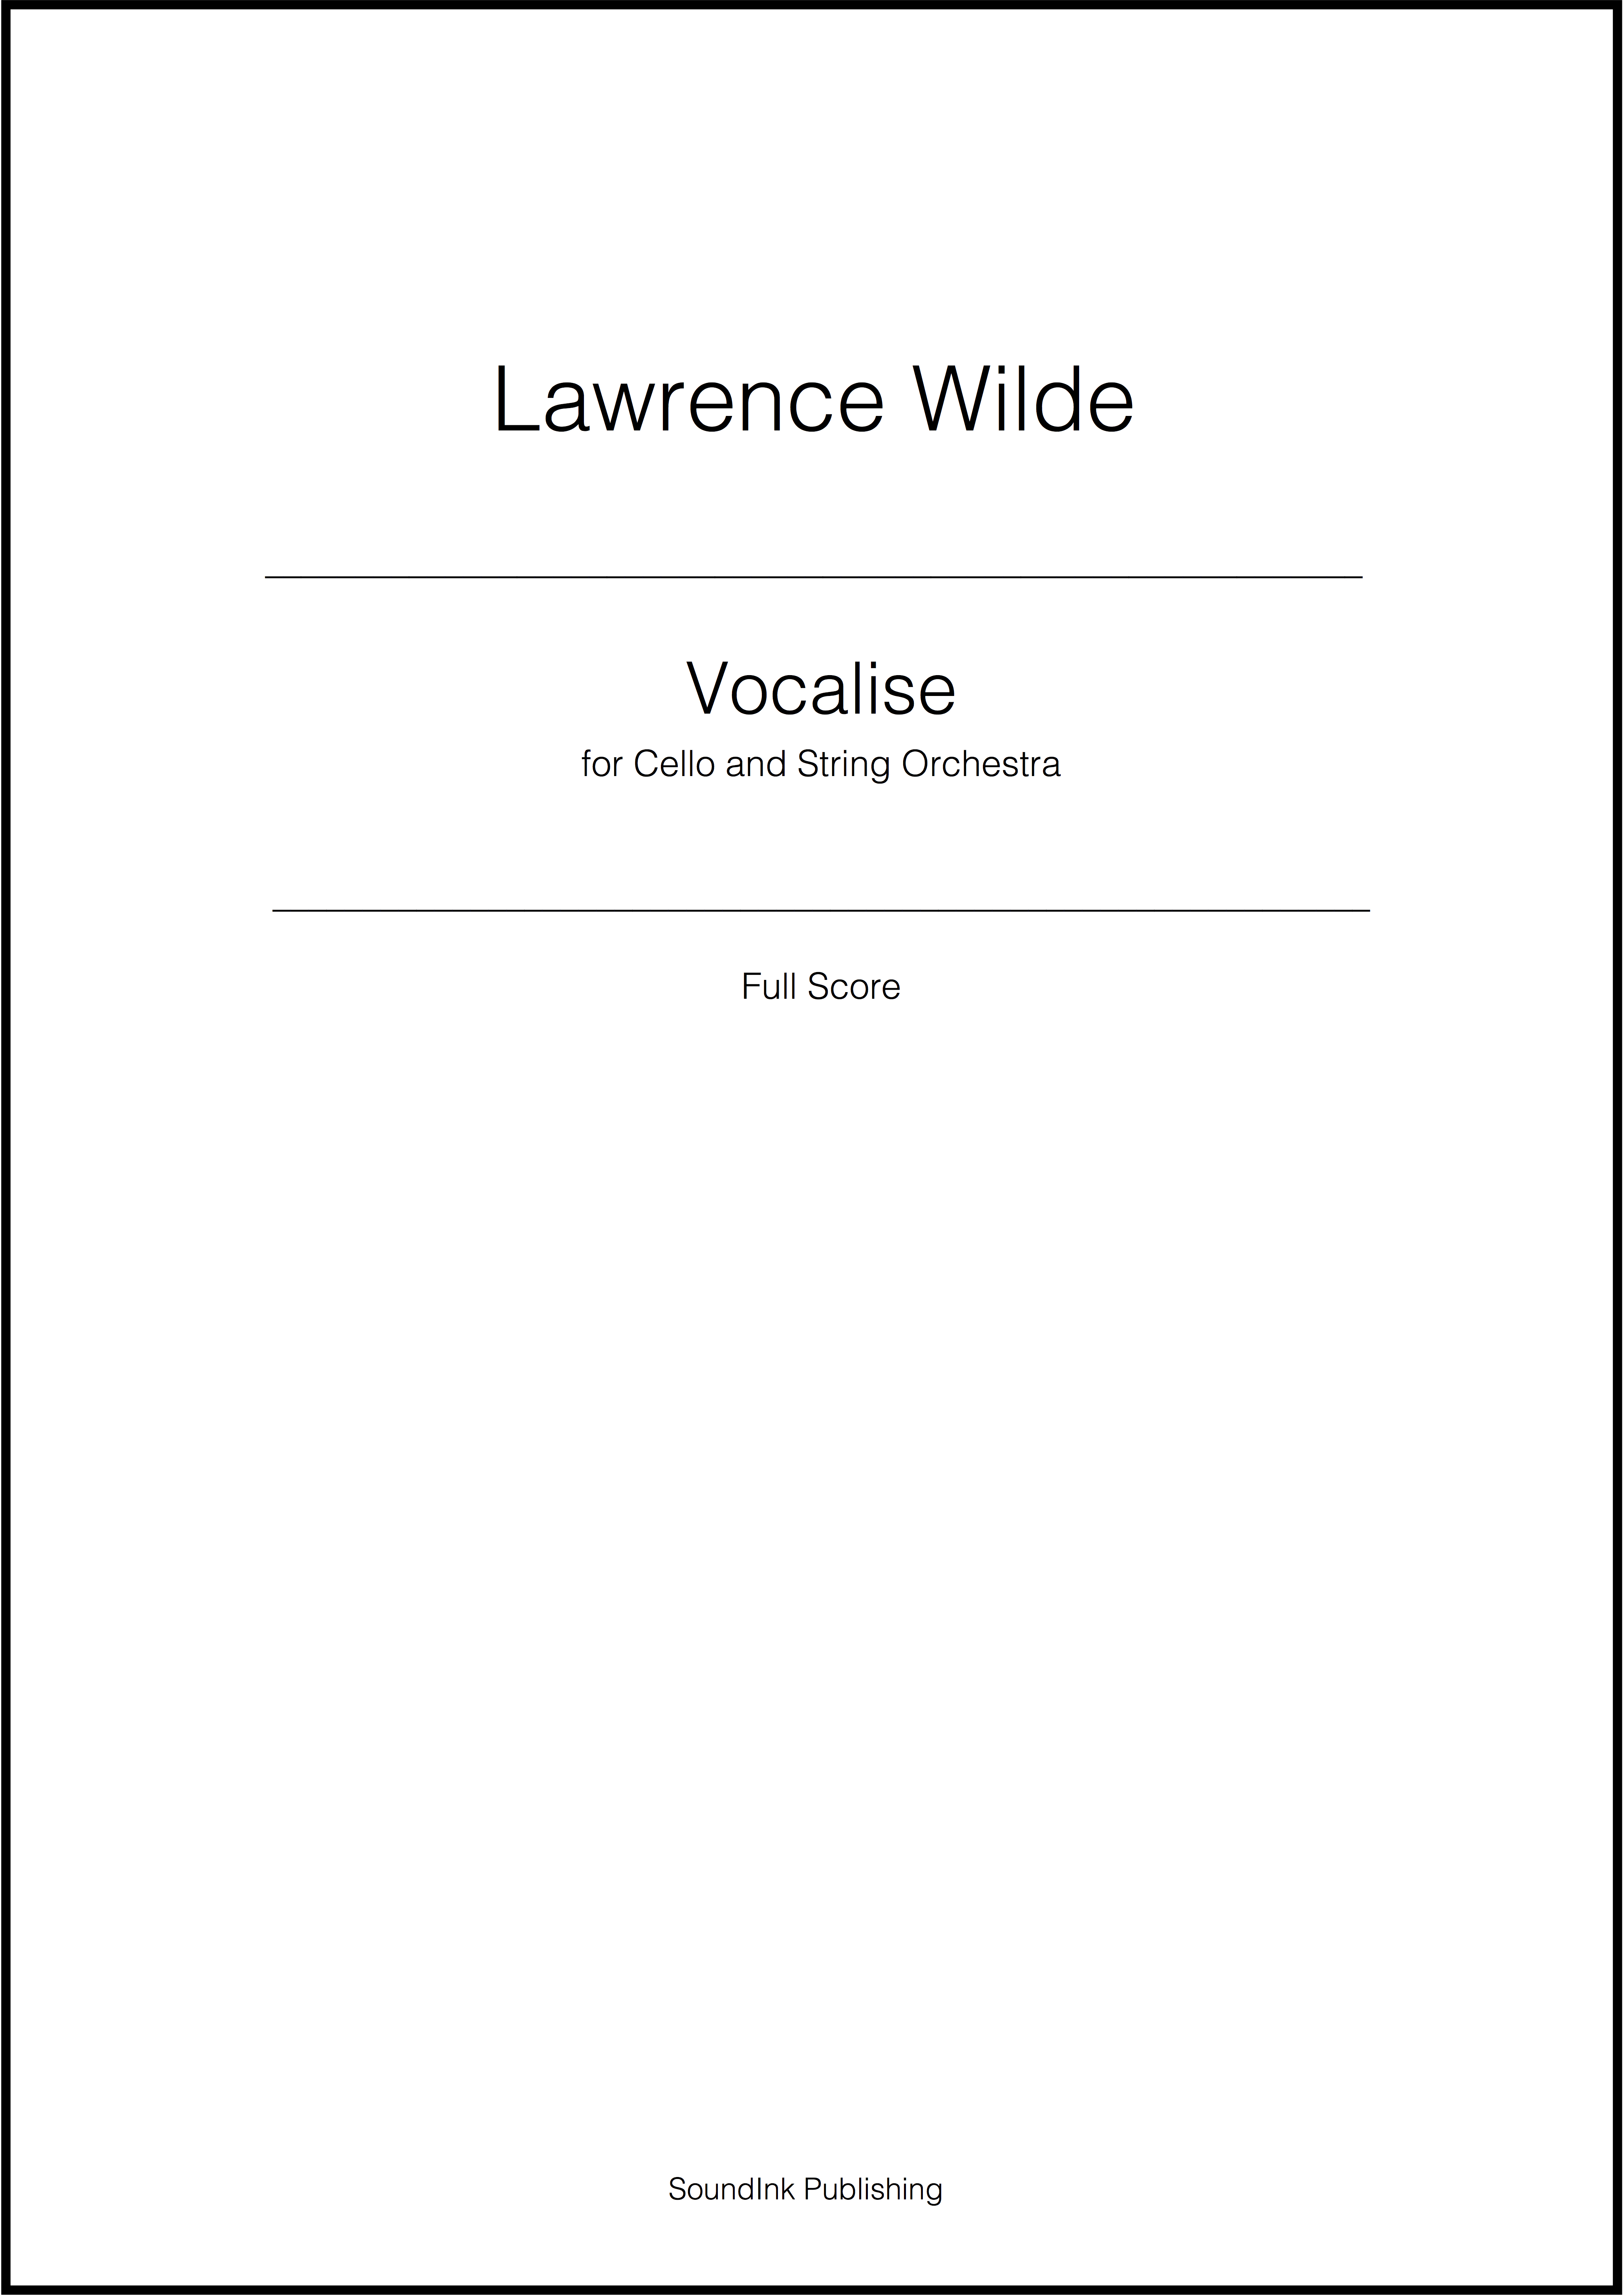 Vocalise for Cello and String Orchestra (Page 3)